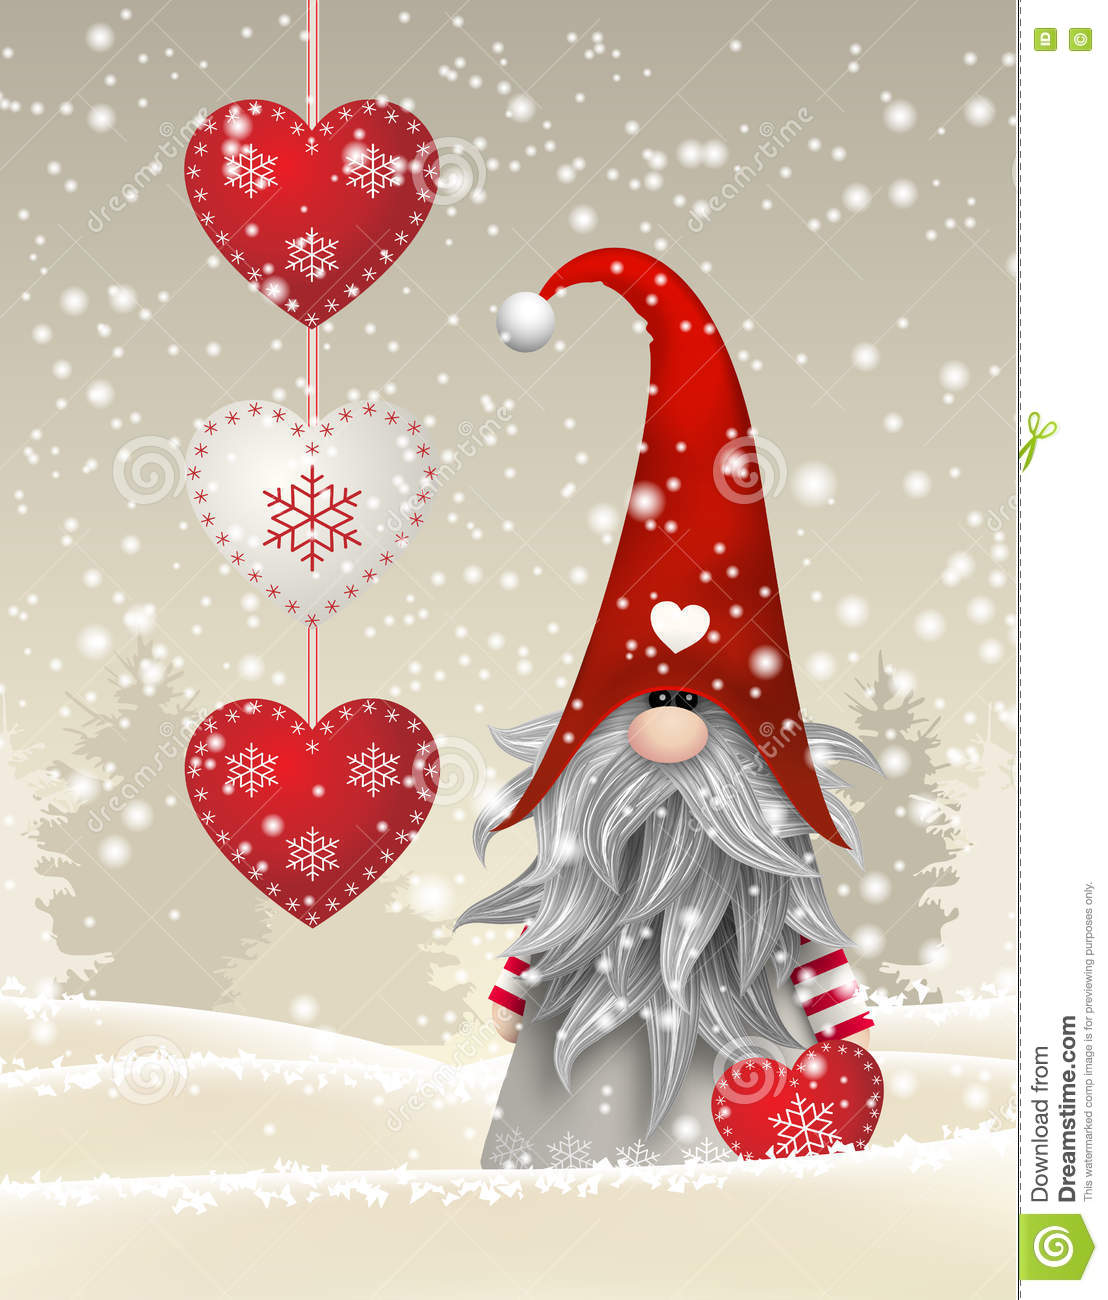 Scandinavian christmas traditional gnome tomte illustration stock download comp m4hsunfo